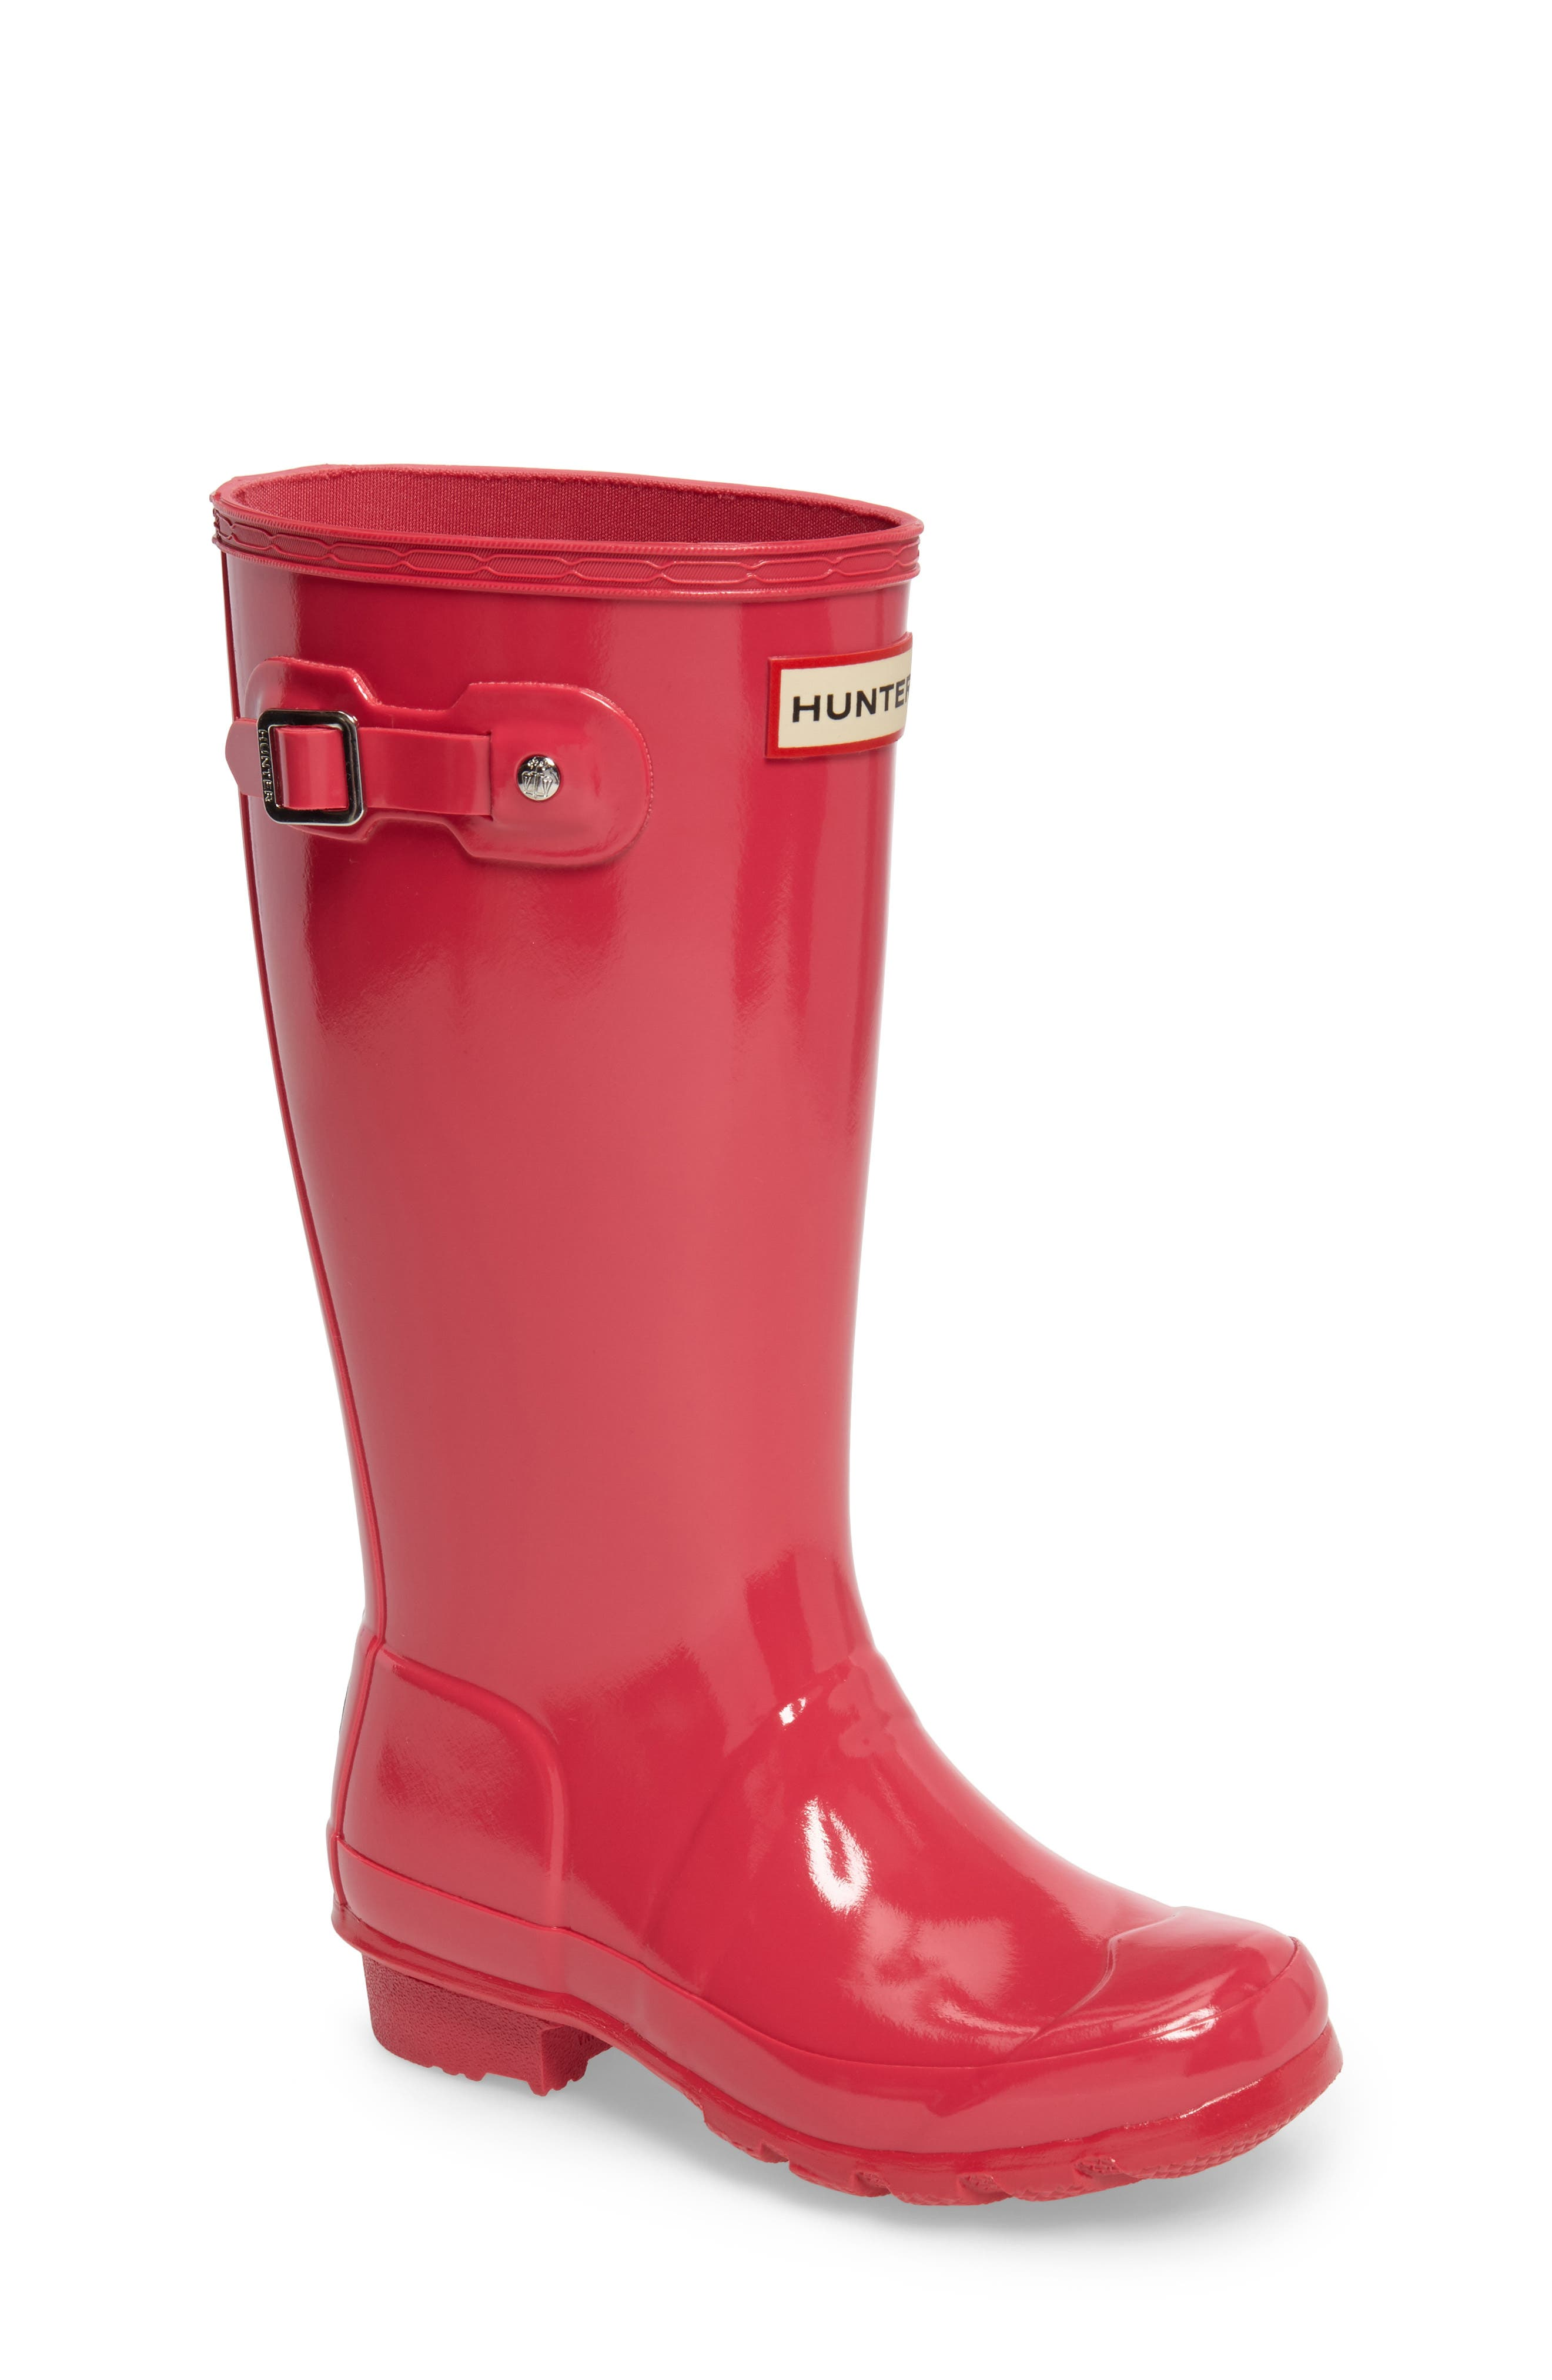 Original Gloss Rain Boot,                             Main thumbnail 1, color,                             BRIGHT PINK